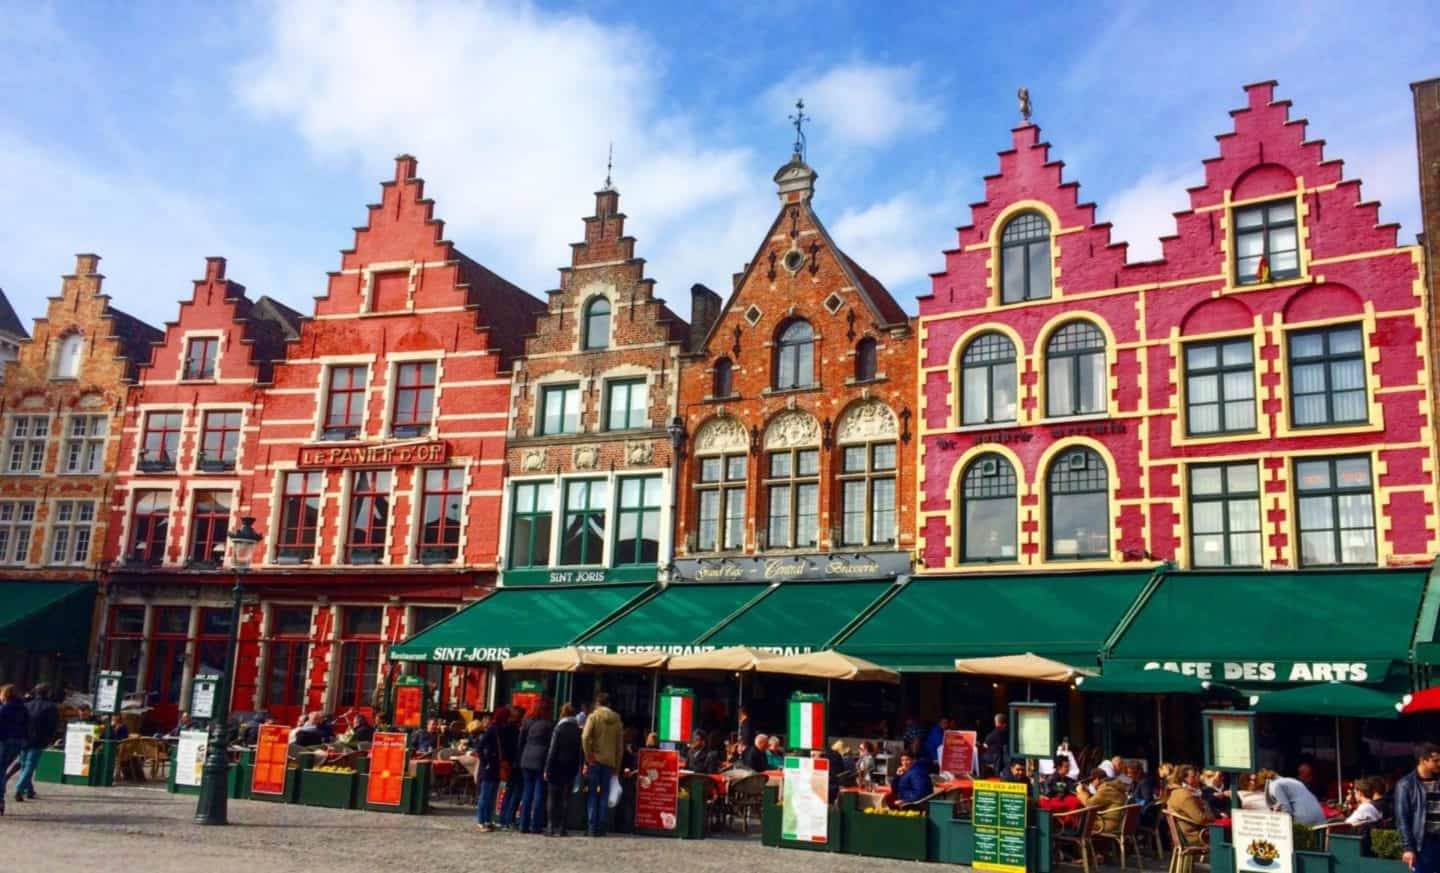 10 Things to do in Bruges, Belgium.